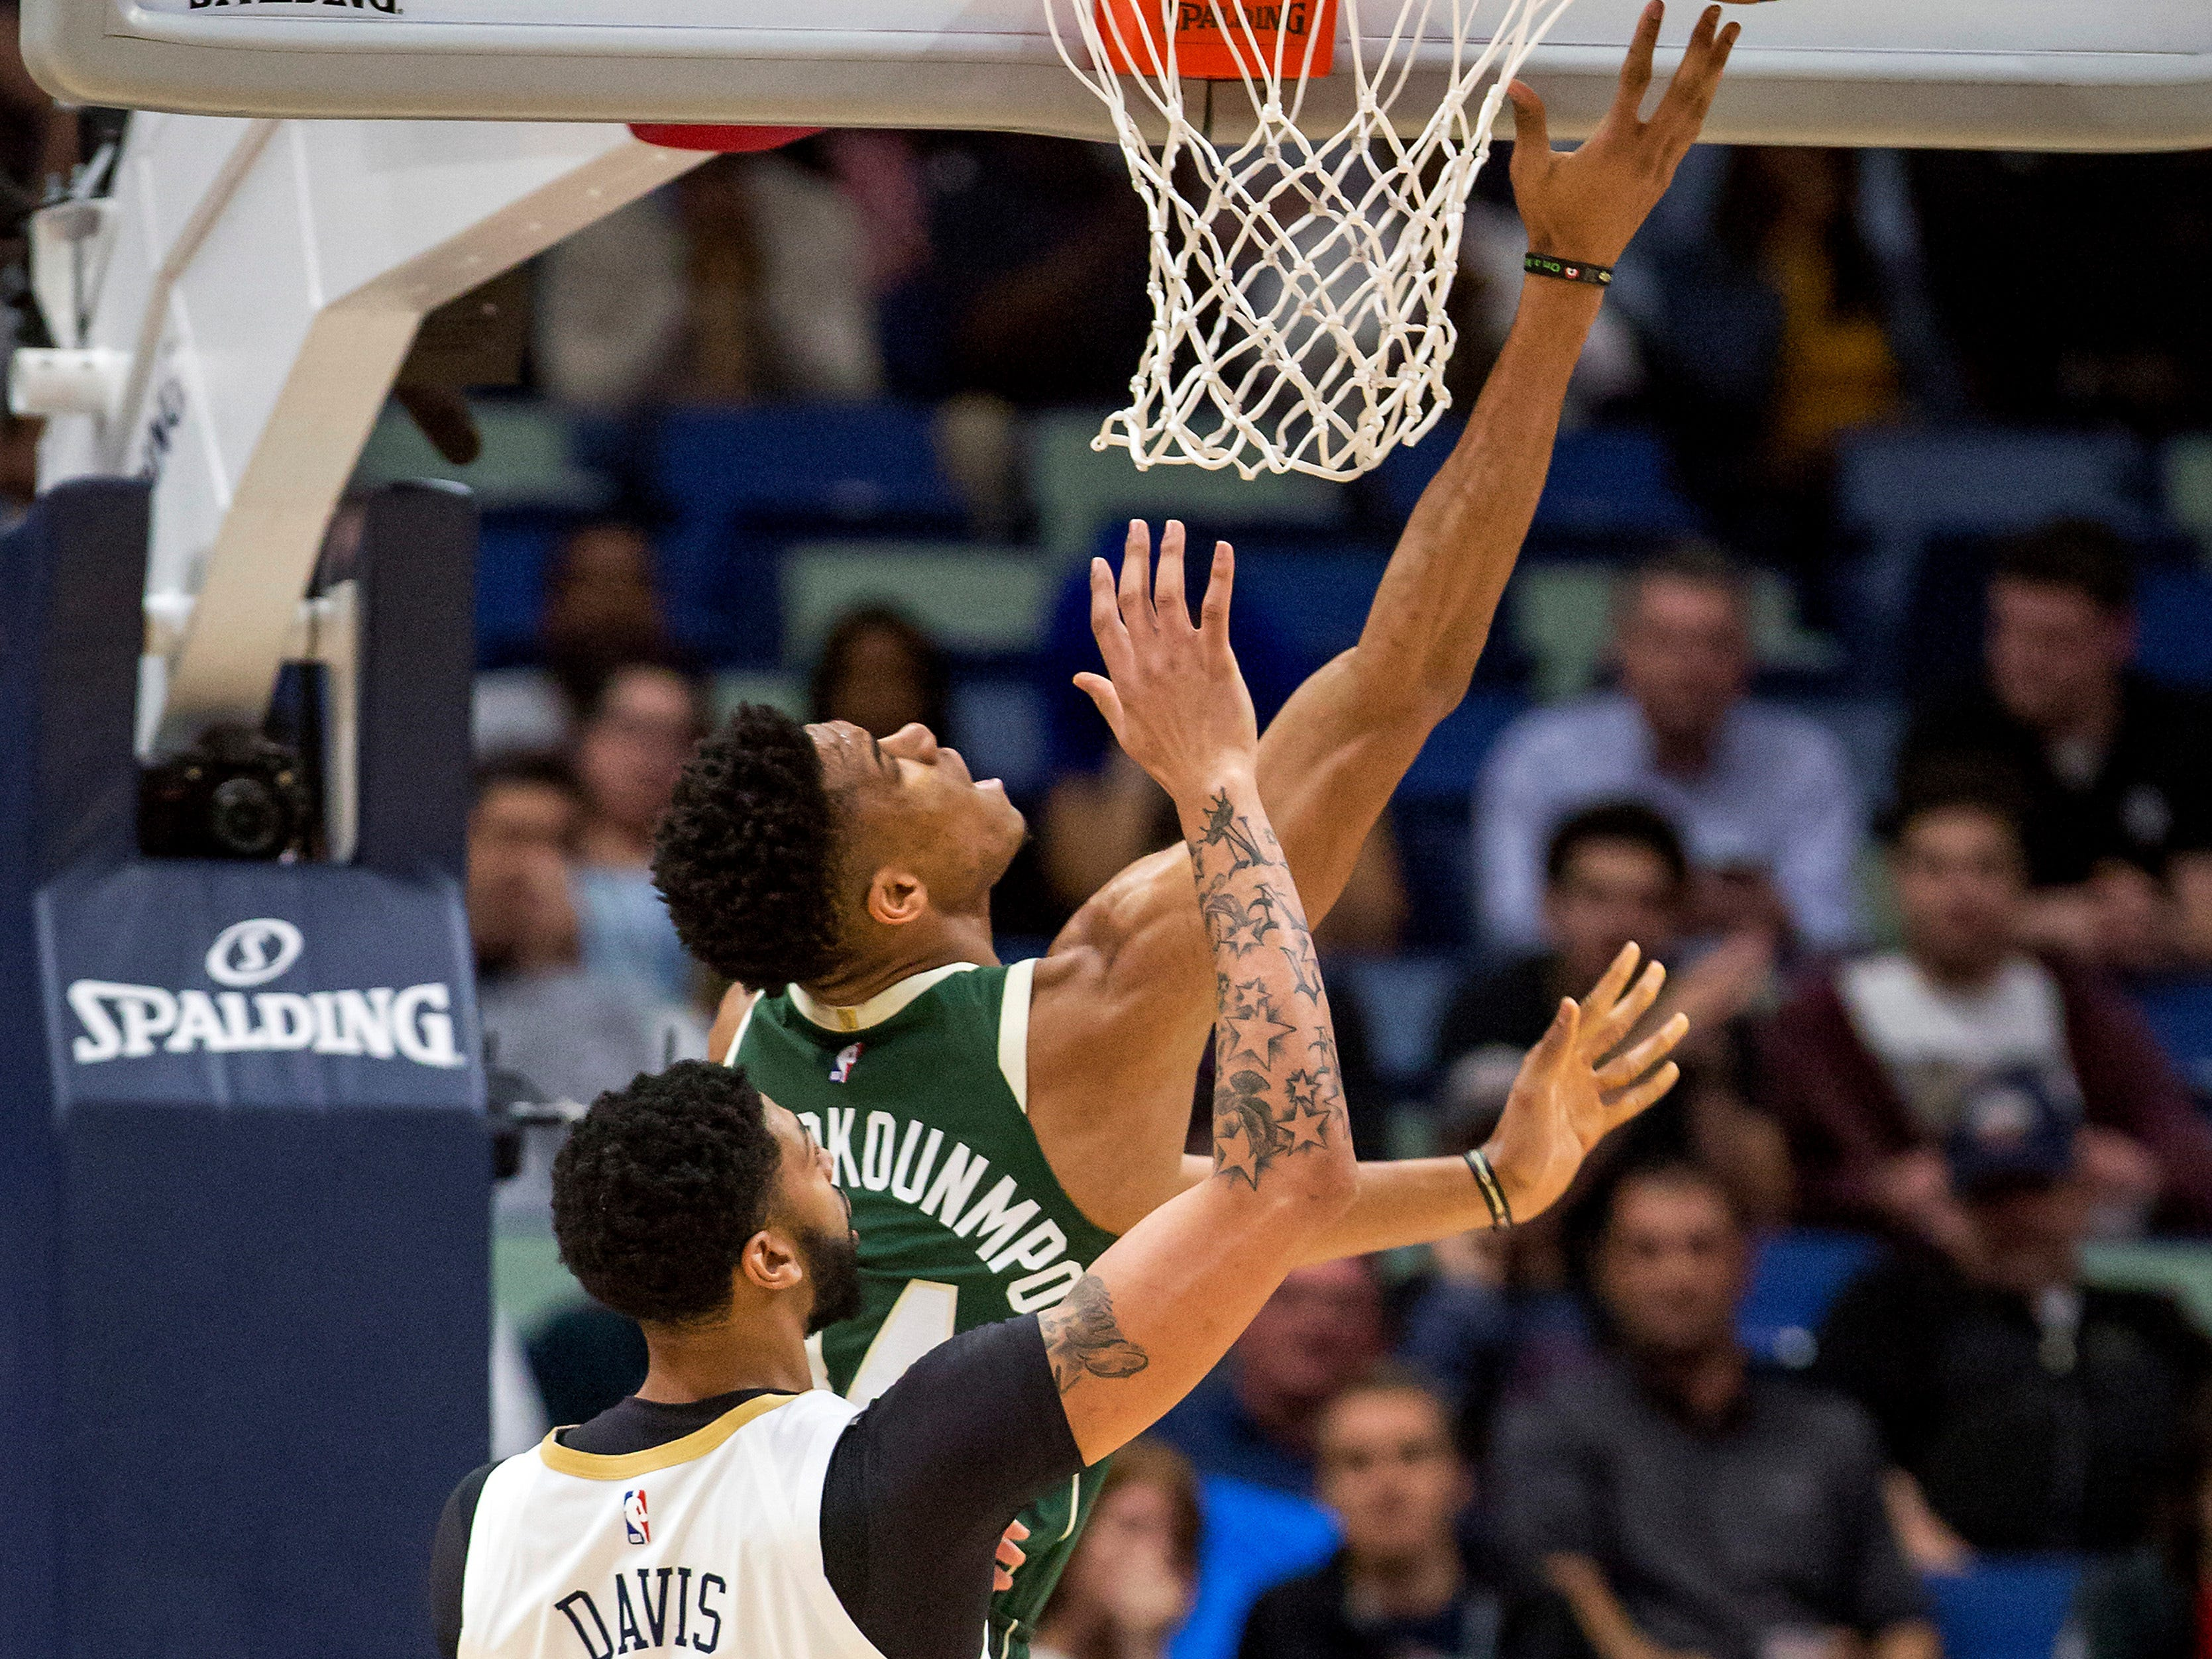 Bucks forward Giannis Antetokounmpo is fouled by Pelicans forward Anthony Davis during the first half.